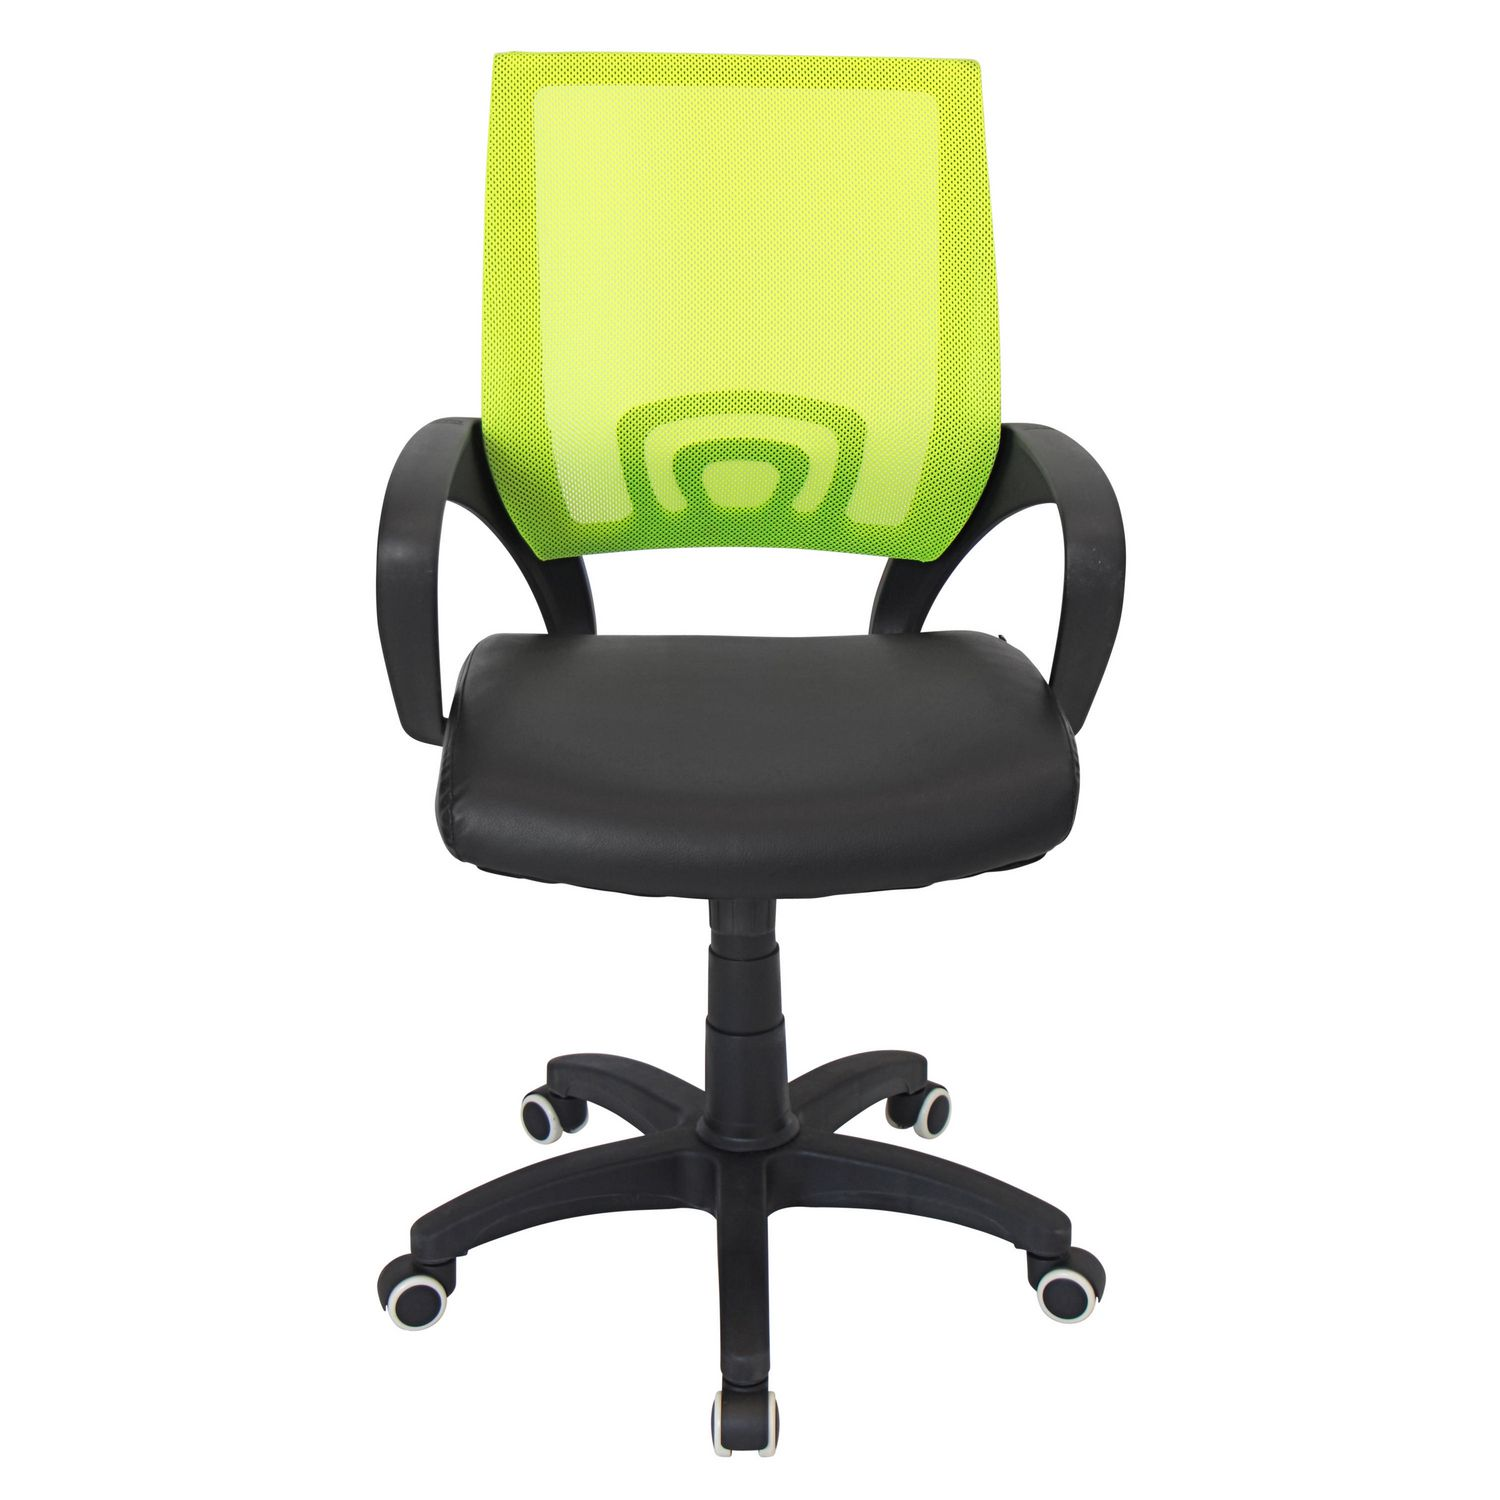 LumiSource ficer Lime Green fice Chair